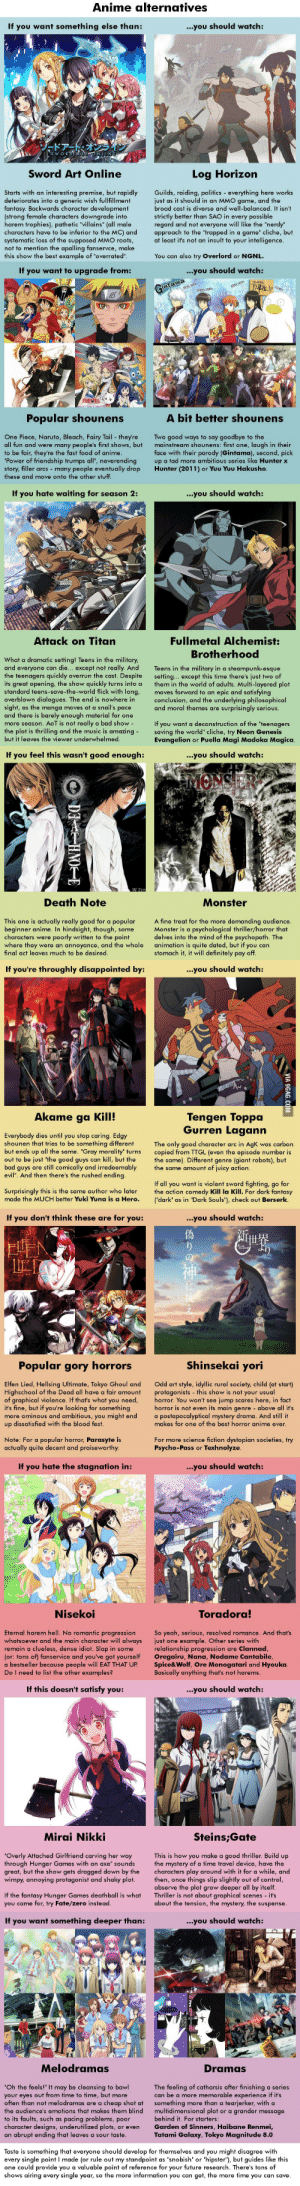 """9gag, Anime, and Bad: Anime alternatives  If you want something else than:  ...you should watch:  Sword Art Online  Log Horizon  Starts with an interesting premise, but rapidly  deteriorates into a generic wish fullfillment  fantasy. Backwards character development  (strong female characters downgrade into  harem trophies), pathetic """"villains"""" (all male  characters have to be inferior  Guilds, raiding, politics - everything here works  just as it should in an MMO qame, and the  broad cast  diverse and well-balanced. It isn't  strictly better than SAO in every possible  regard and not everyone will like the """"nerdy""""  approach to the """"trapped in a game' cliche, but  at least it's not an insult to your intelligence.  the MC) and  systematic loss of the supposed MMO roots,  mention the apalling fanservce, make  this show the best example of """"overrated  not  You can also try Overlord or NGNL.  If you want to upgrade from:  ...you should watch:  Guitama  A bit better shounens  Popular shounens  One Piece, Naruto, Bleach, Fairy Tail - they're  all fun and were many people's first shows, but  to be fair, they're the fast food of anime.  """"Power of friendship trumps all"""", neverending  story, filler arcs- many people eventually drop  Two good ways to say goodbye to the  mainstream shounens: first one, laugh  face with their parody (Gintama), second, pick  up a tad more ambitious series like Hunter x  Hunter (2011) or Yuu Yuu Hakusho  their  these and move onto the other stuff.  If you hate waiting for season 2:  ...you should watch:  Attack on Titan  Fullmetal Alchemist:  Brotherhood  What a dramatic setting! Teens in the military,  and everyone can die... except not really. And  the teenagers quickly overrun the cast. Despite  its great opening, the show quickly turns into a  standard teens-save -the -world flick with long,  overblown dialogues. The end is nowhere in  sight, as the manga moves  and there is barely enough material for one  Teens in the military in a steampunk-e"""